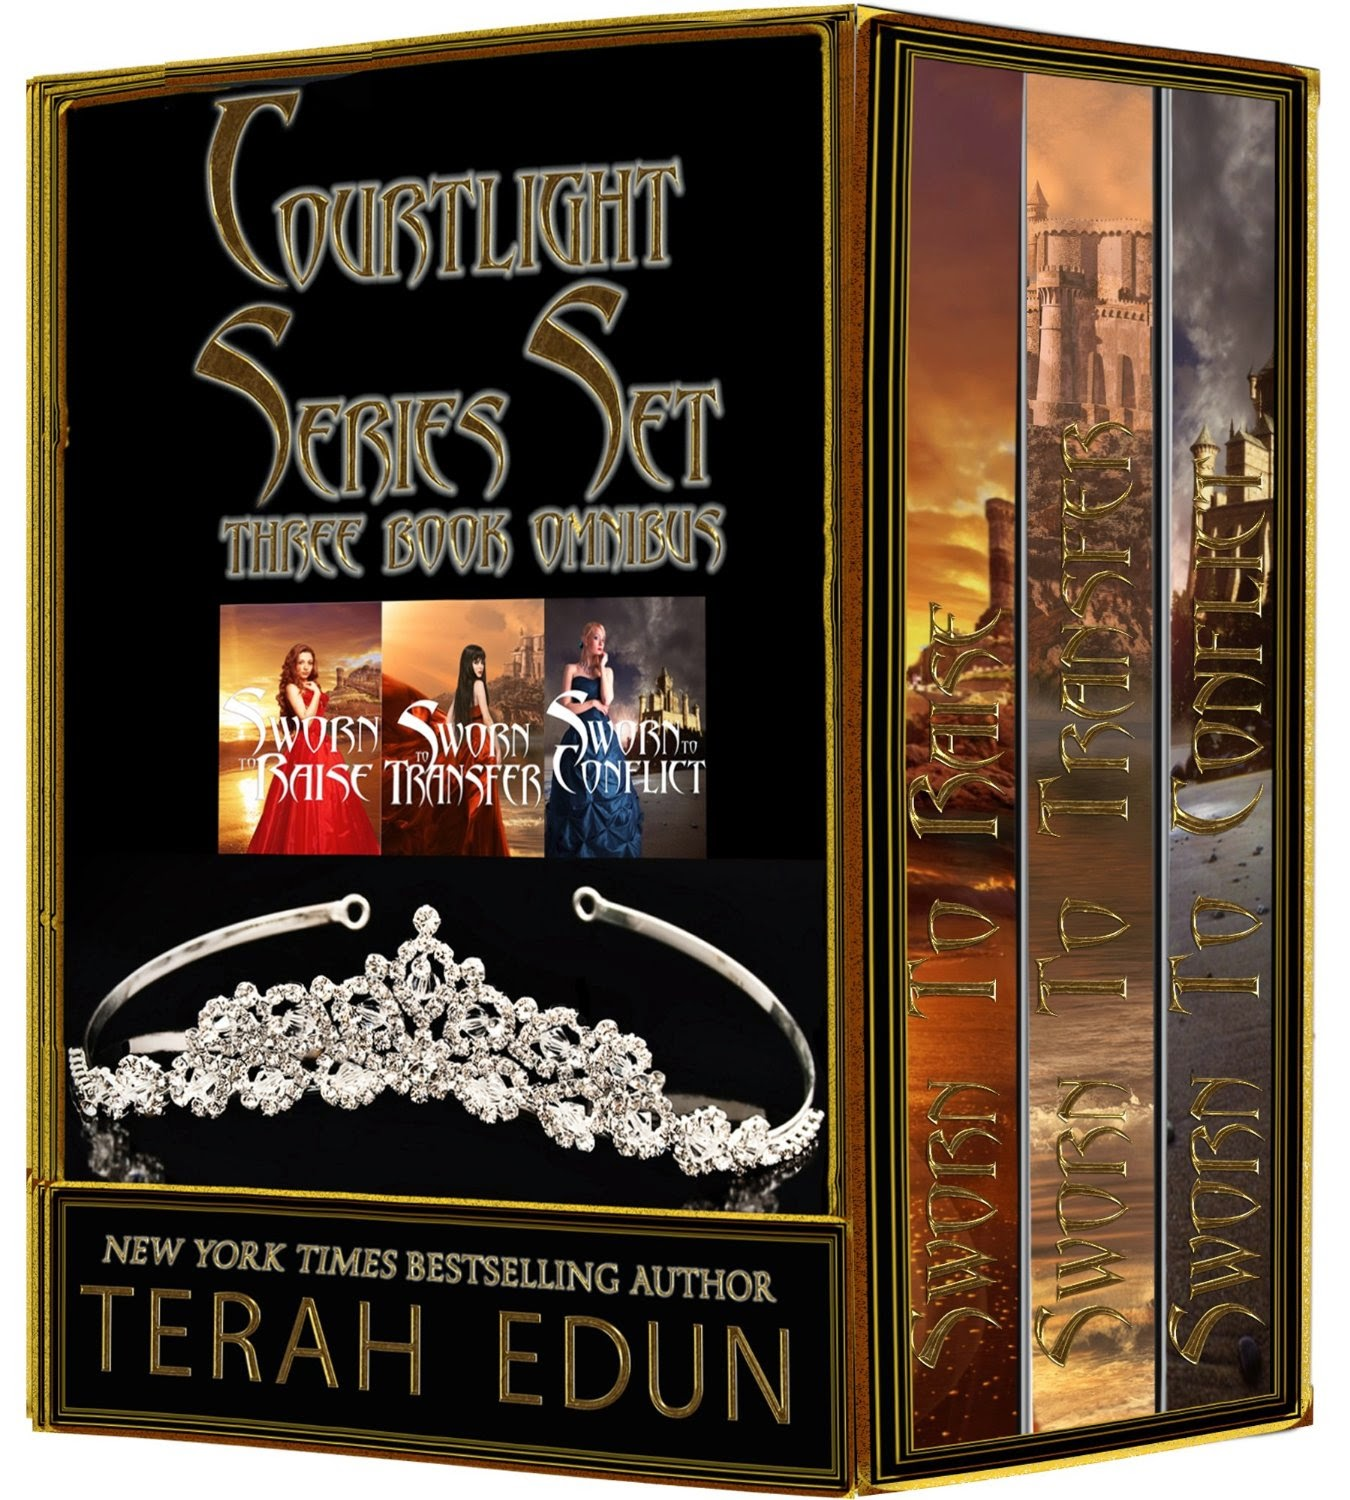 {alternative Free Fridays} Courtlight Series Books 13 By Terah Edun